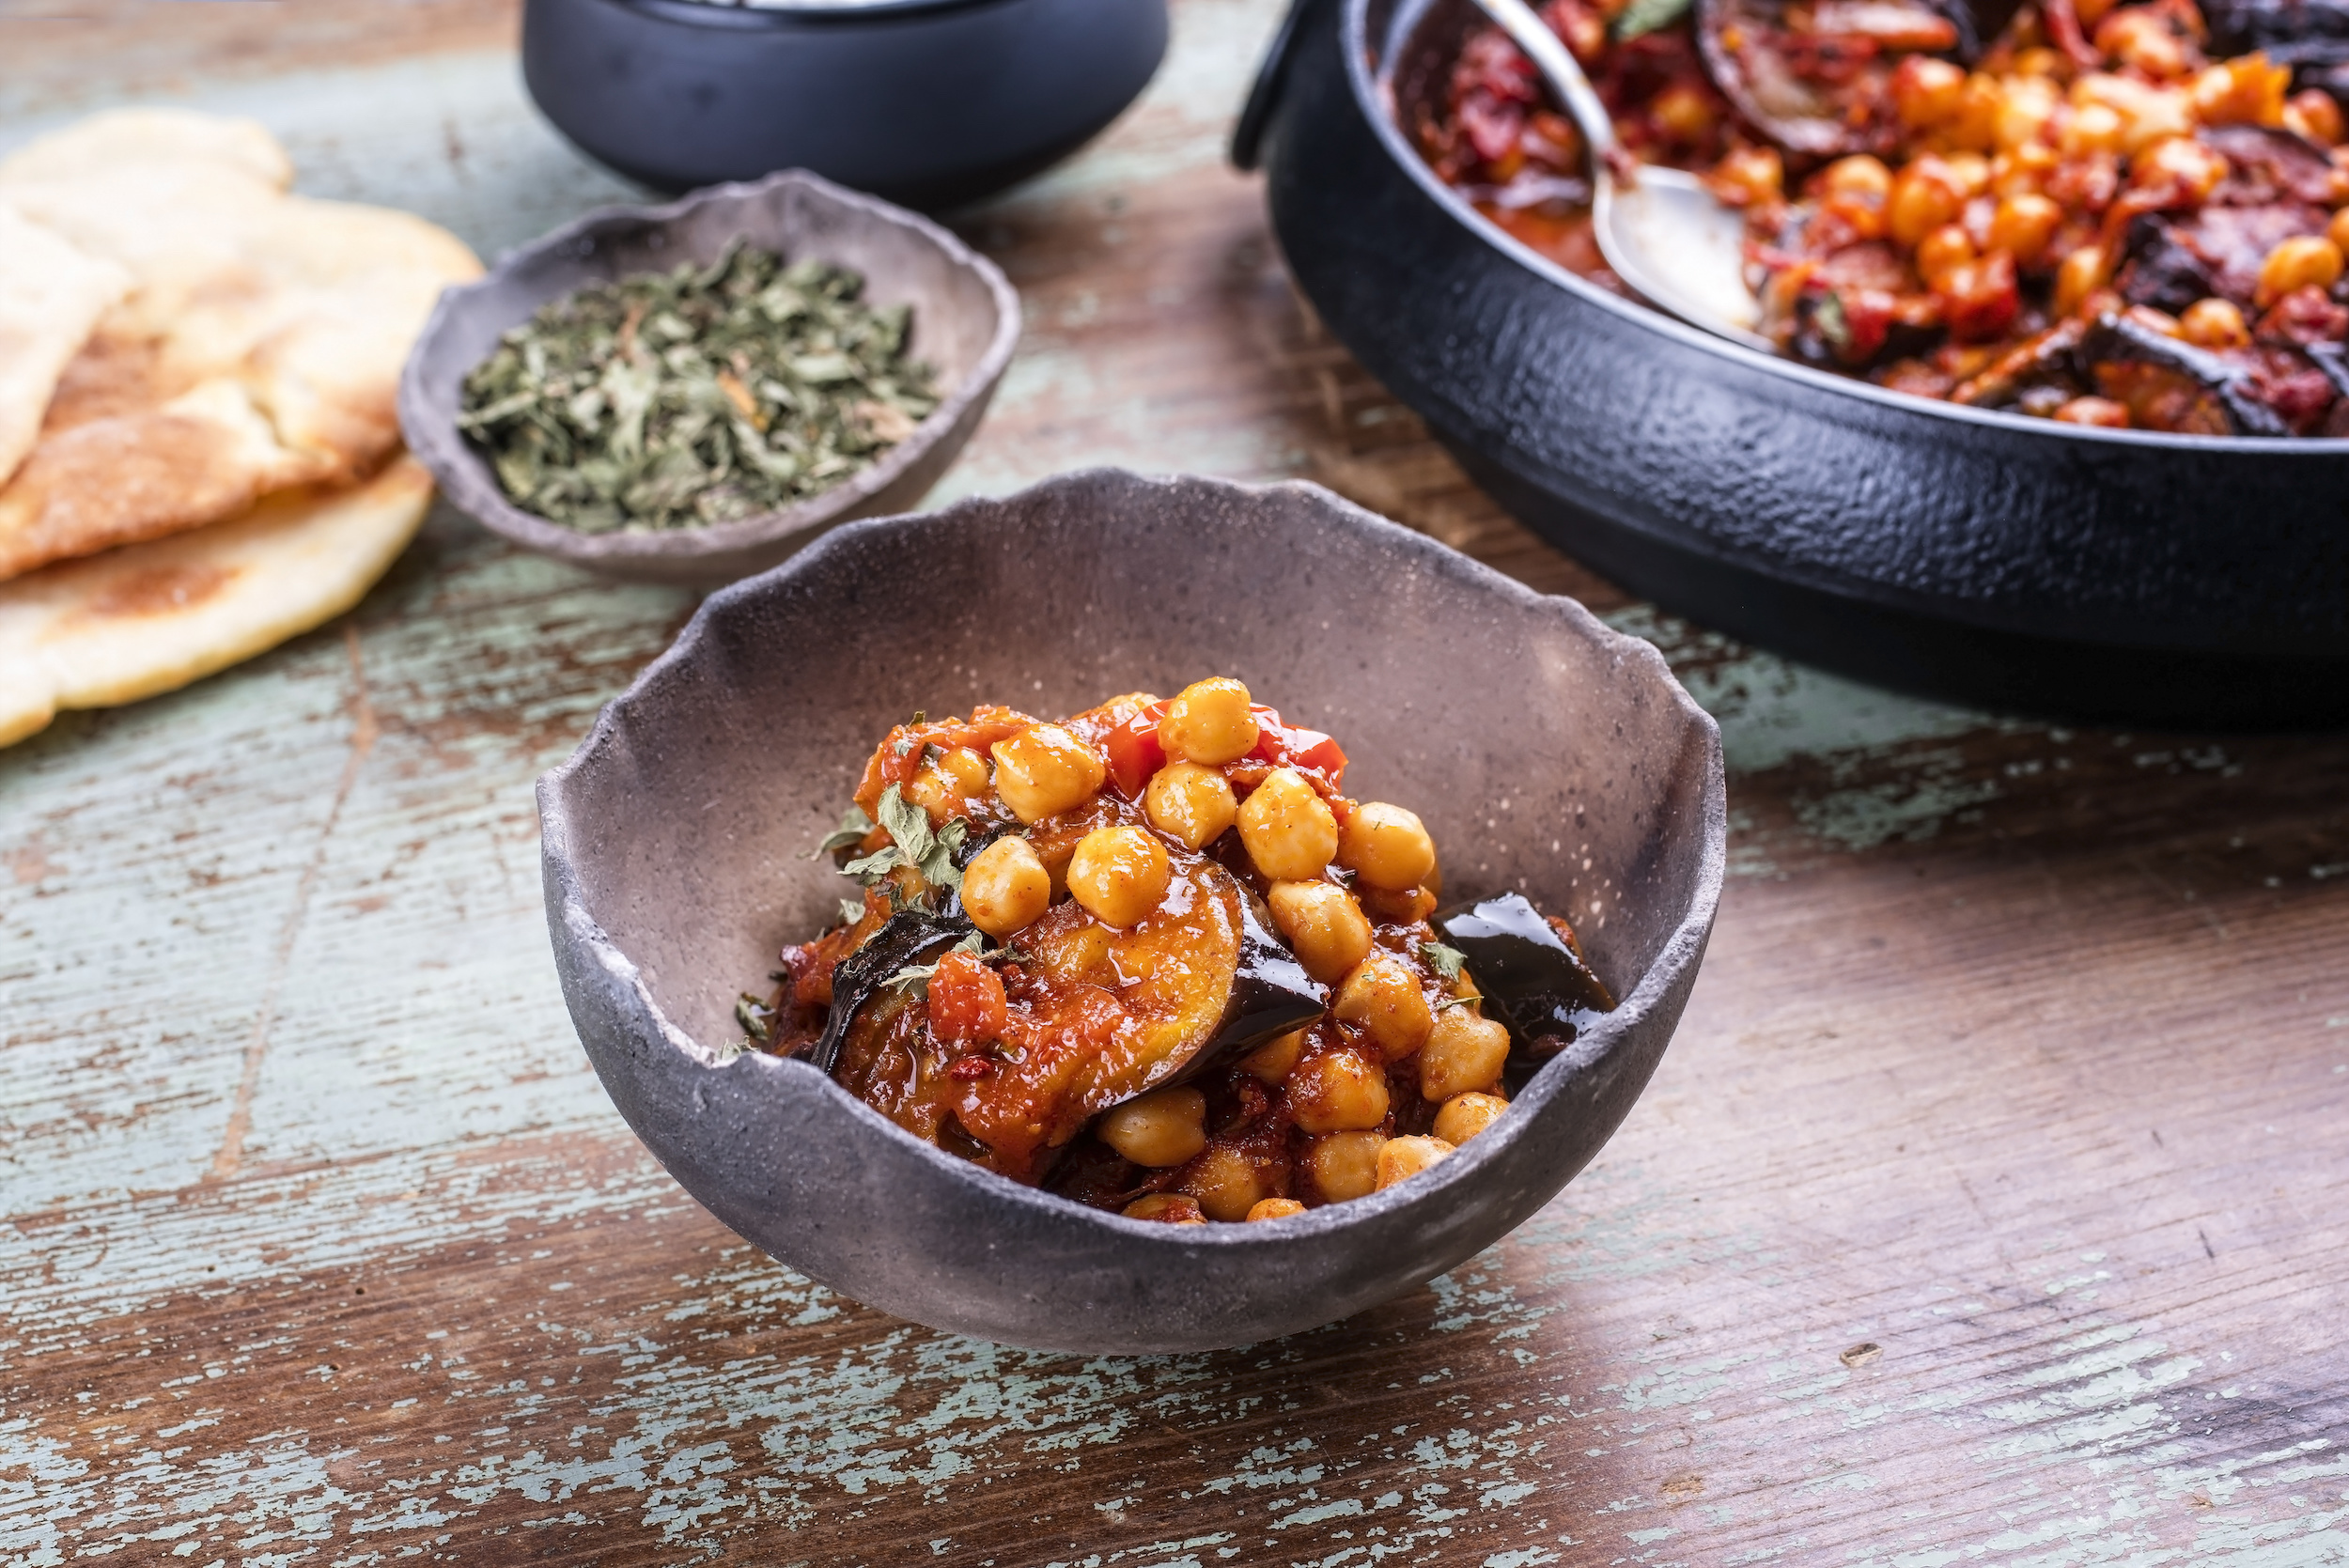 Maghmour - aubergine and chickpea stew